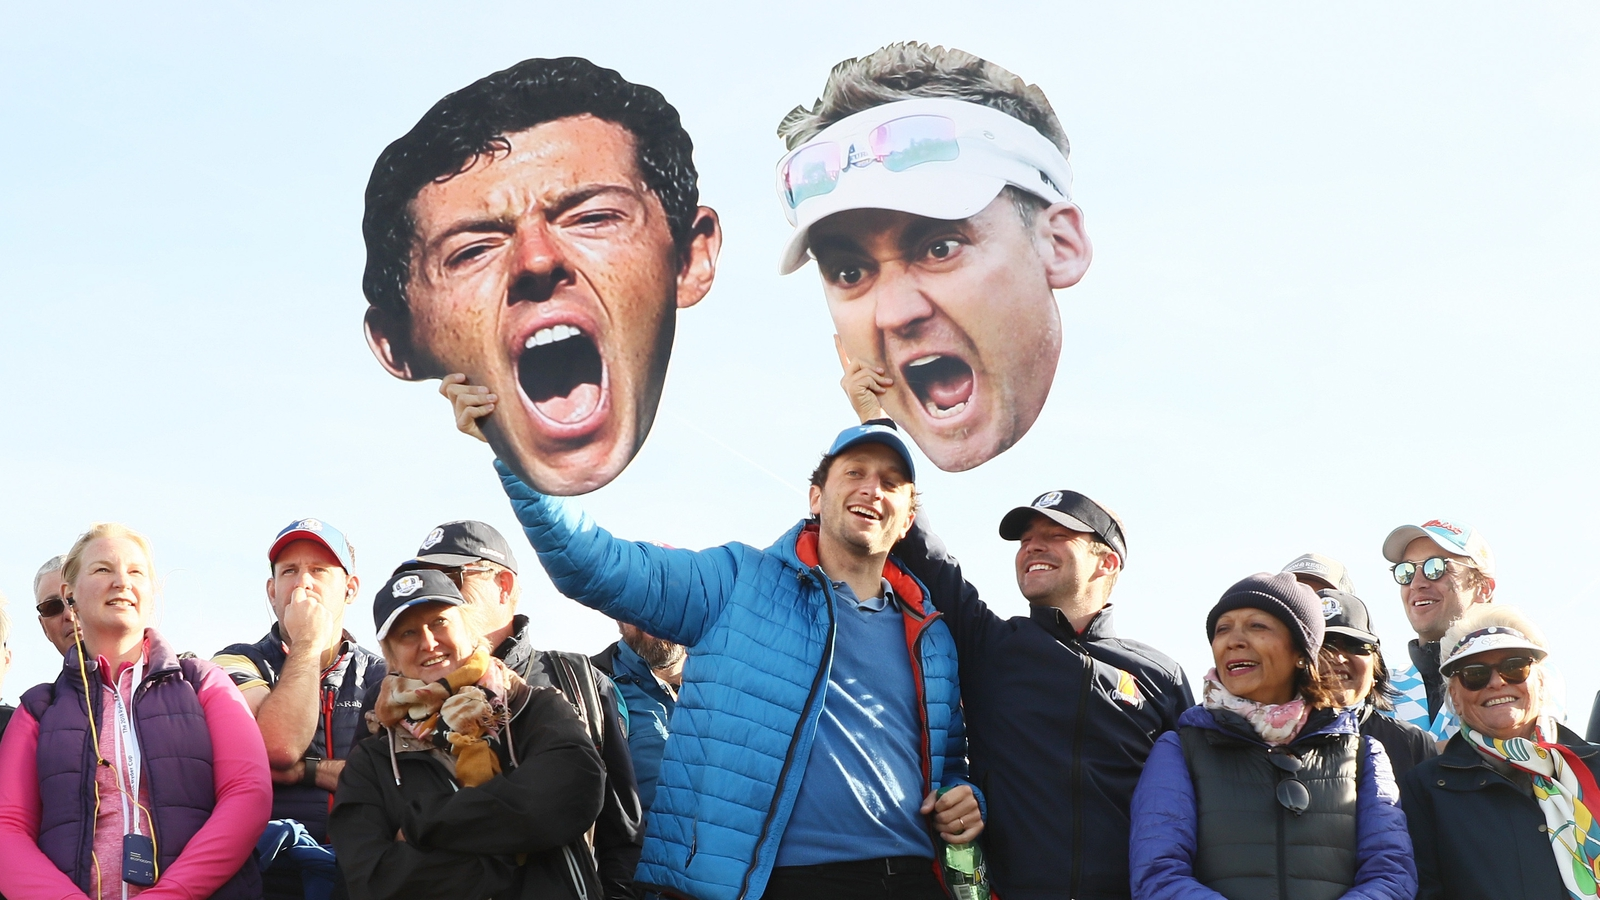 McIlroy partners Poulter in foursomes, Lowry left out - RTE.ie